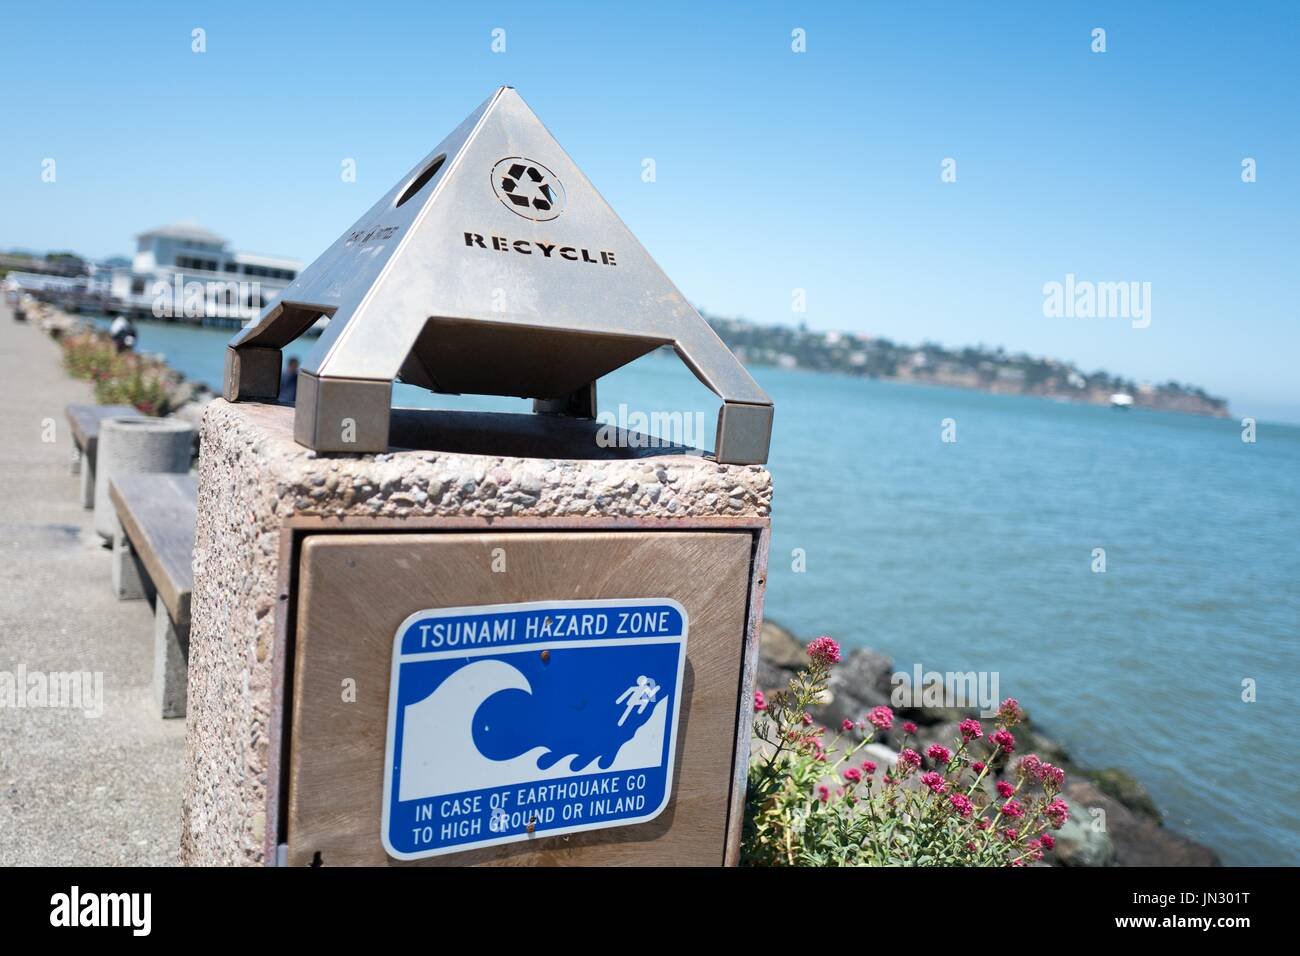 Signage on the side of a trash can reads Tsunami Hazard Zone on Bridgeway Road in the San Francisco Bay Area town of Sausalito, California, June 29, 2017. Tsunamis are a threat to the seismically active Bay Area. - Stock Image